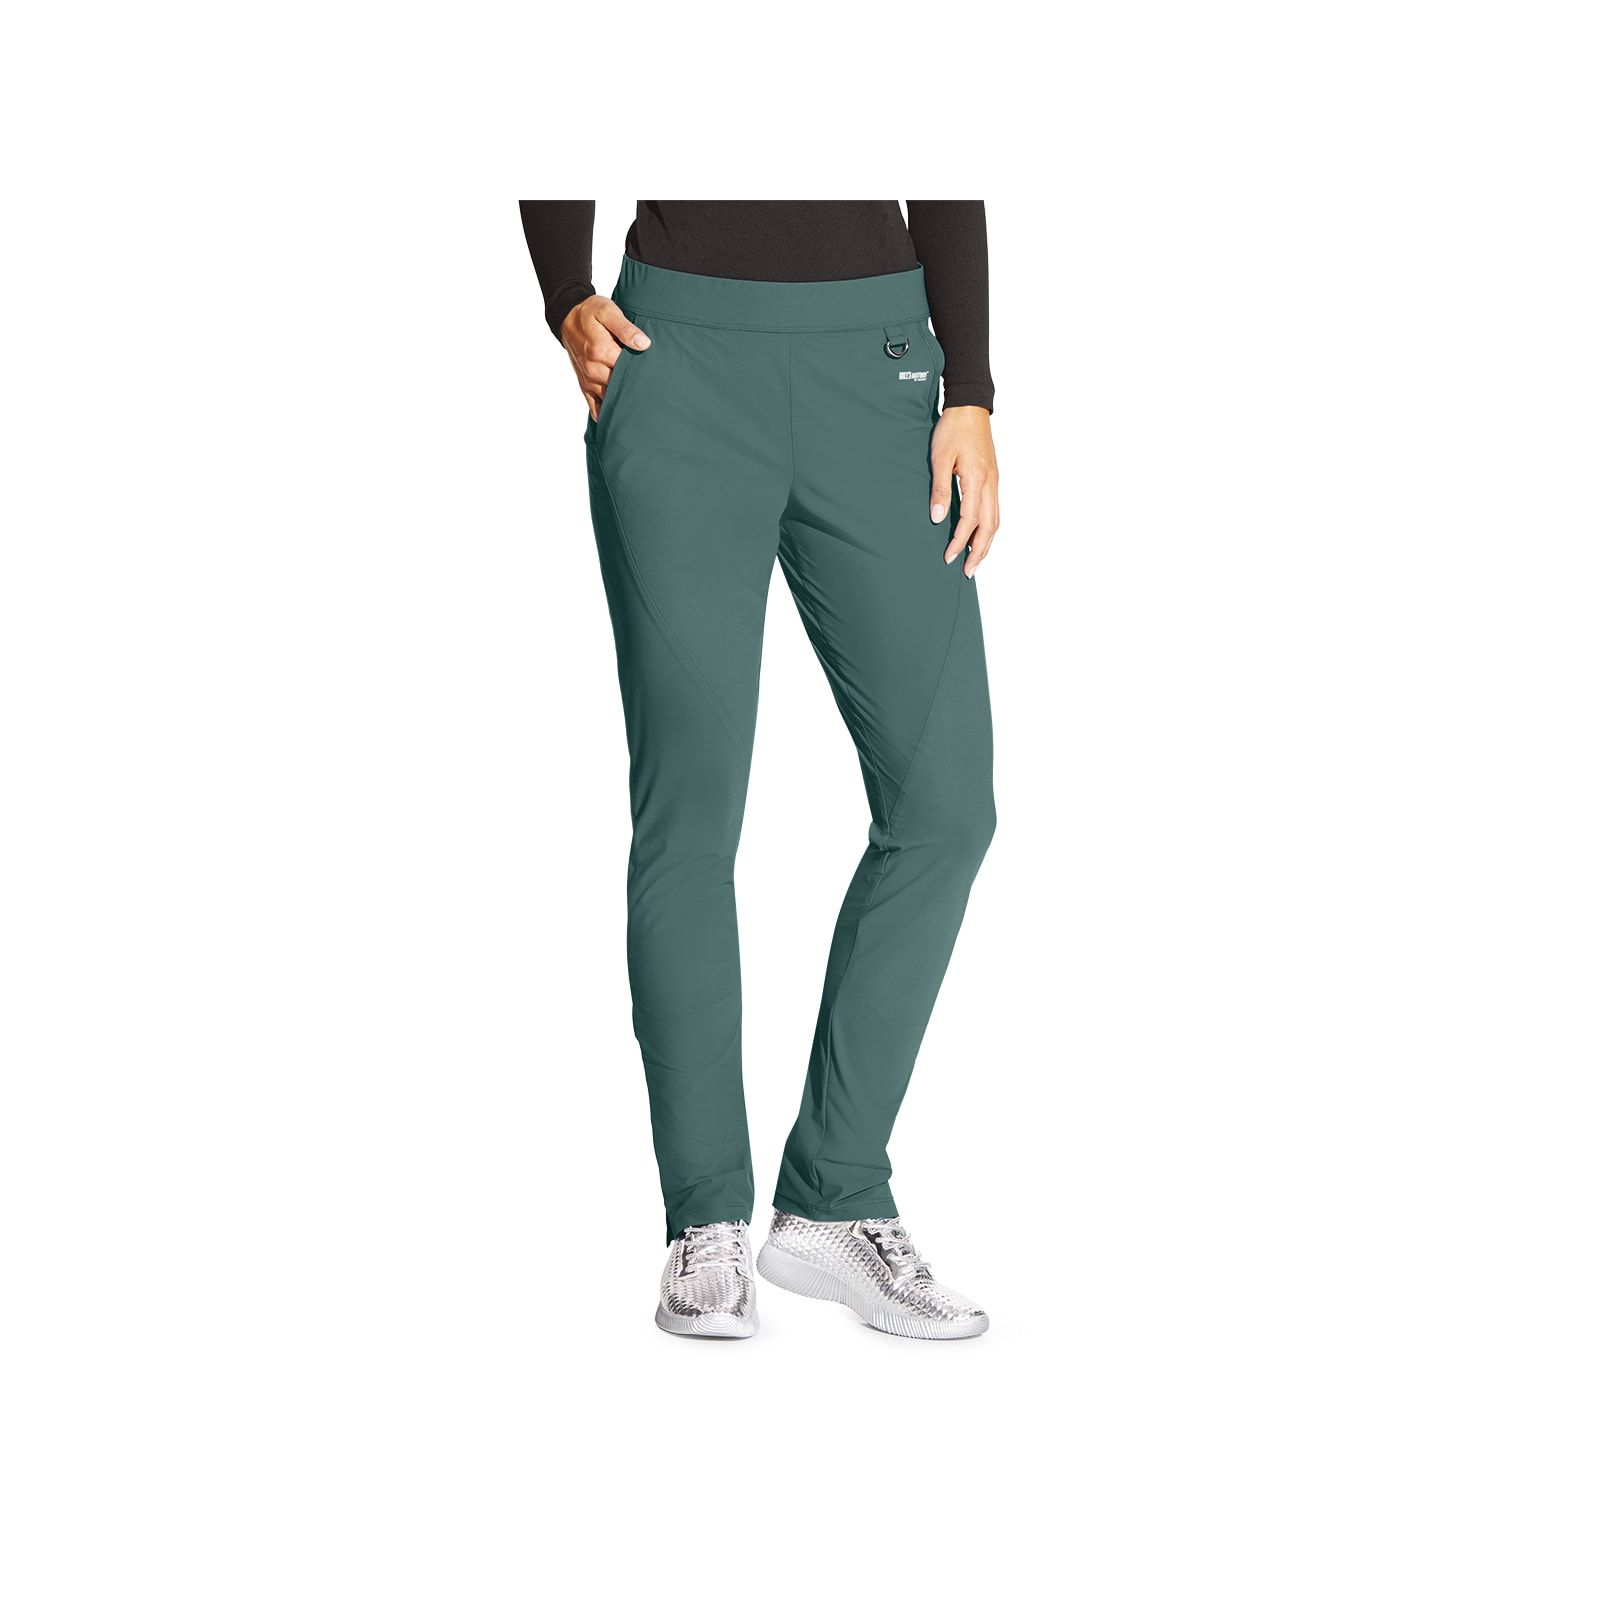 "Pantalon médical femme, couleur vert olive vue de face, collection ""Grey's Anatomy Edge"" (GEP005-)"